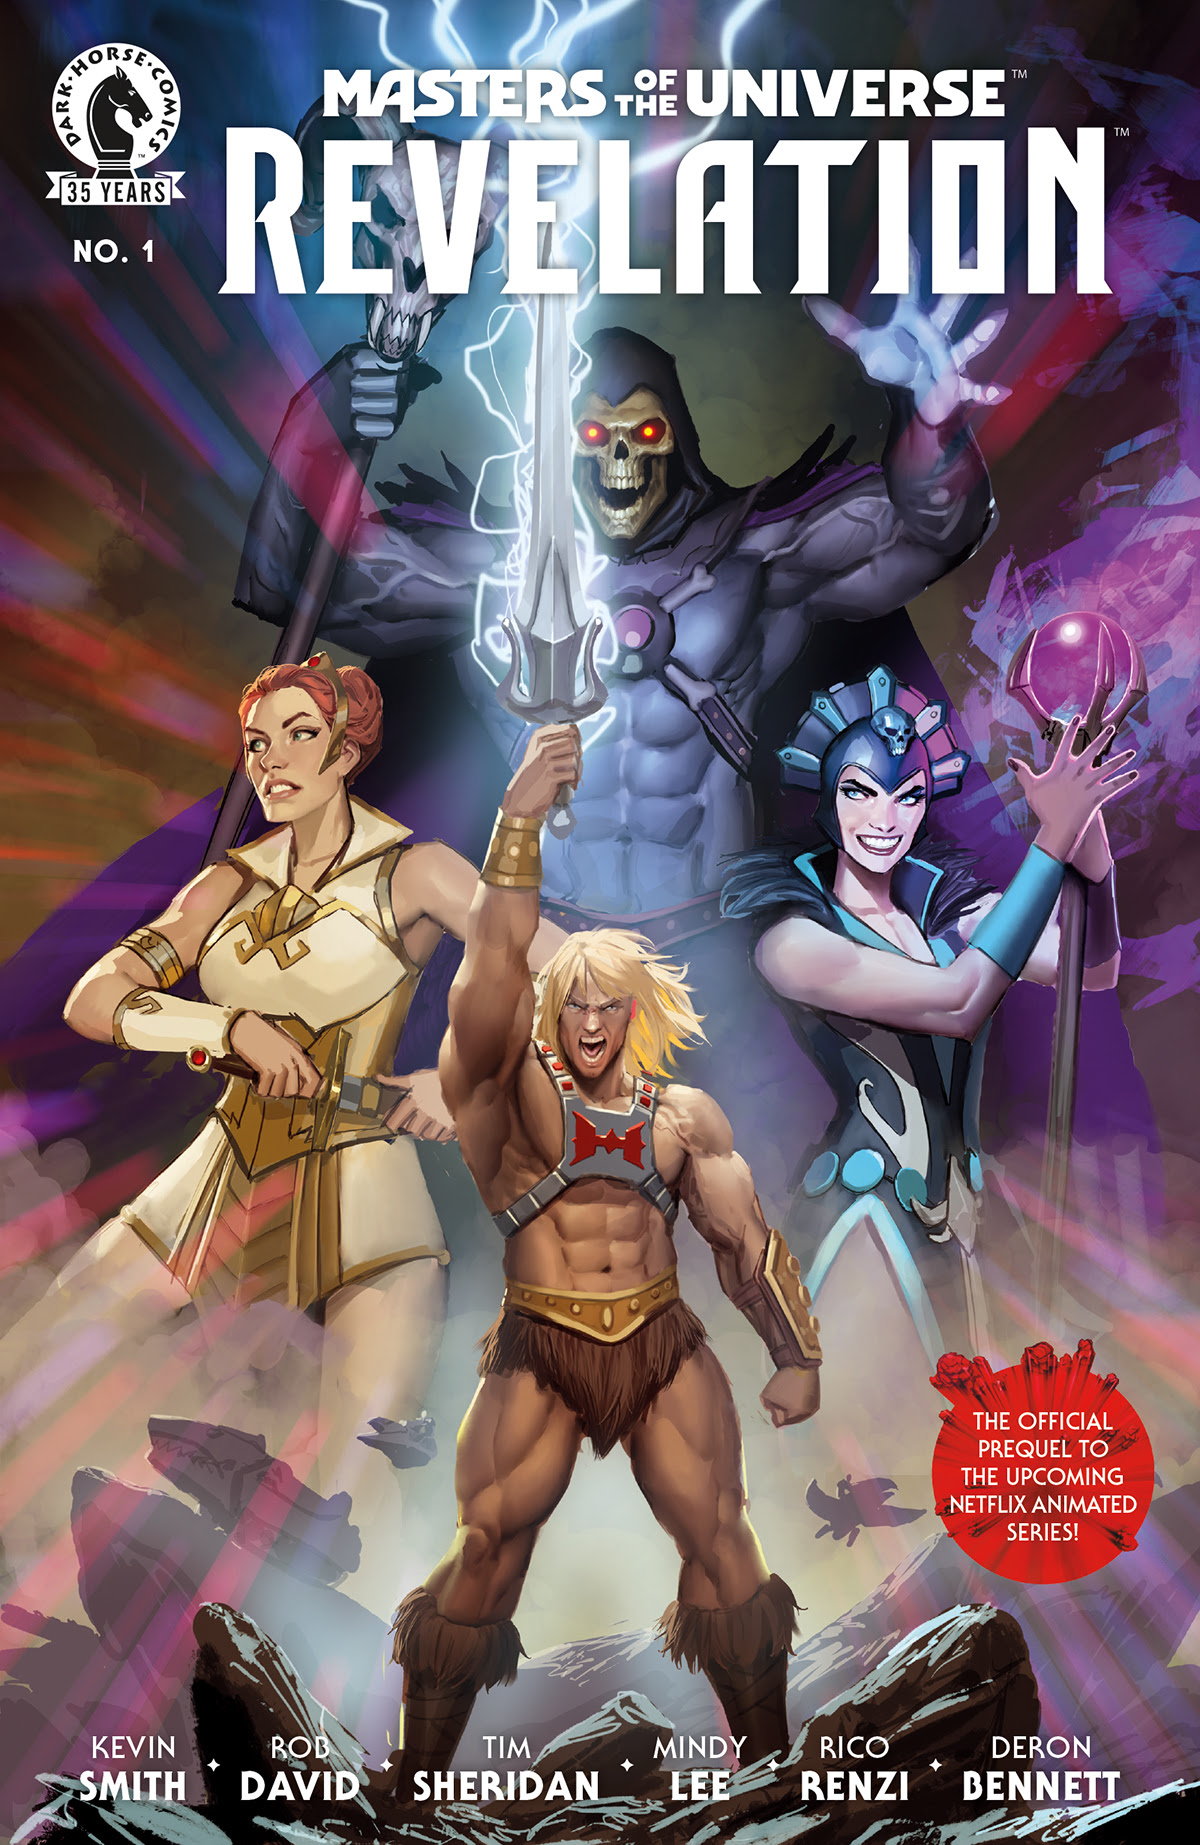 Masters-of-the-Universe-Revelation-1-A Masters-of-the-Universe-Revelation-1-A